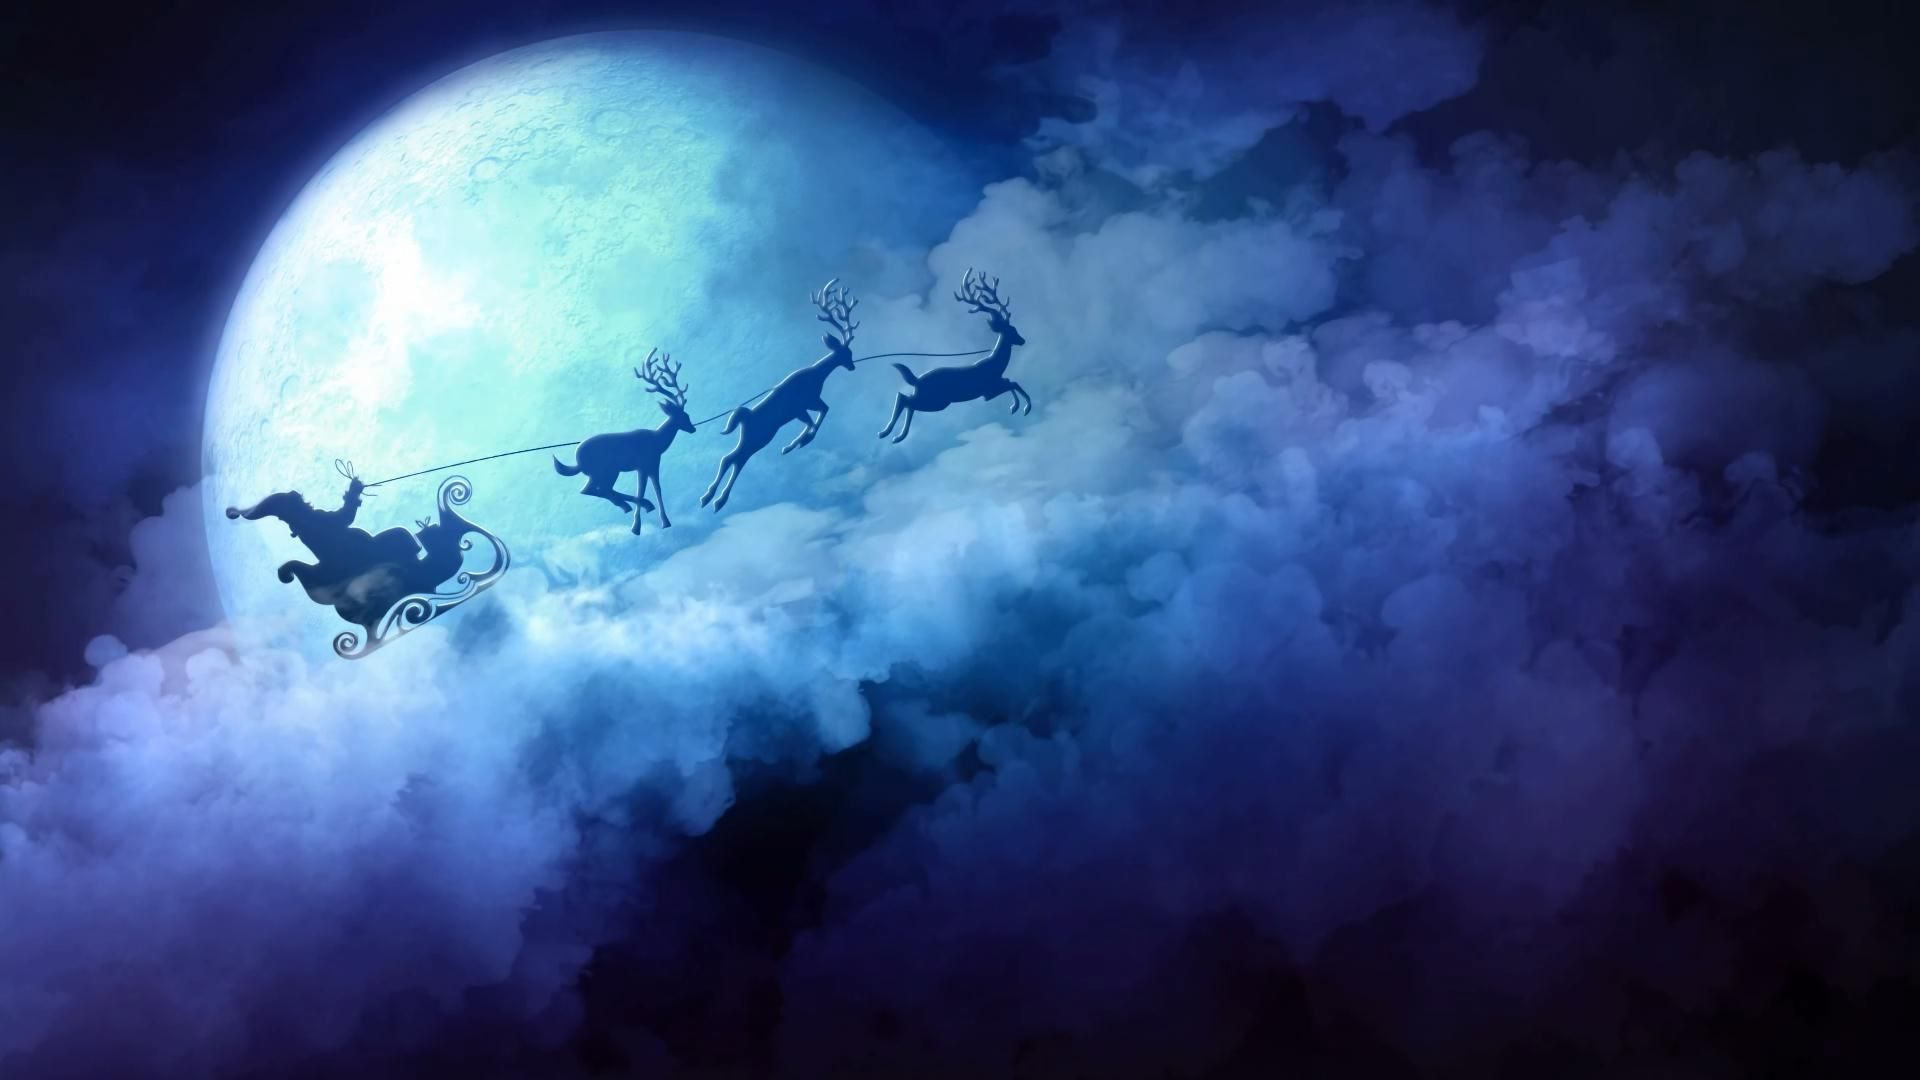 Live Christmas Wallpaper (With images) Christmas desktop